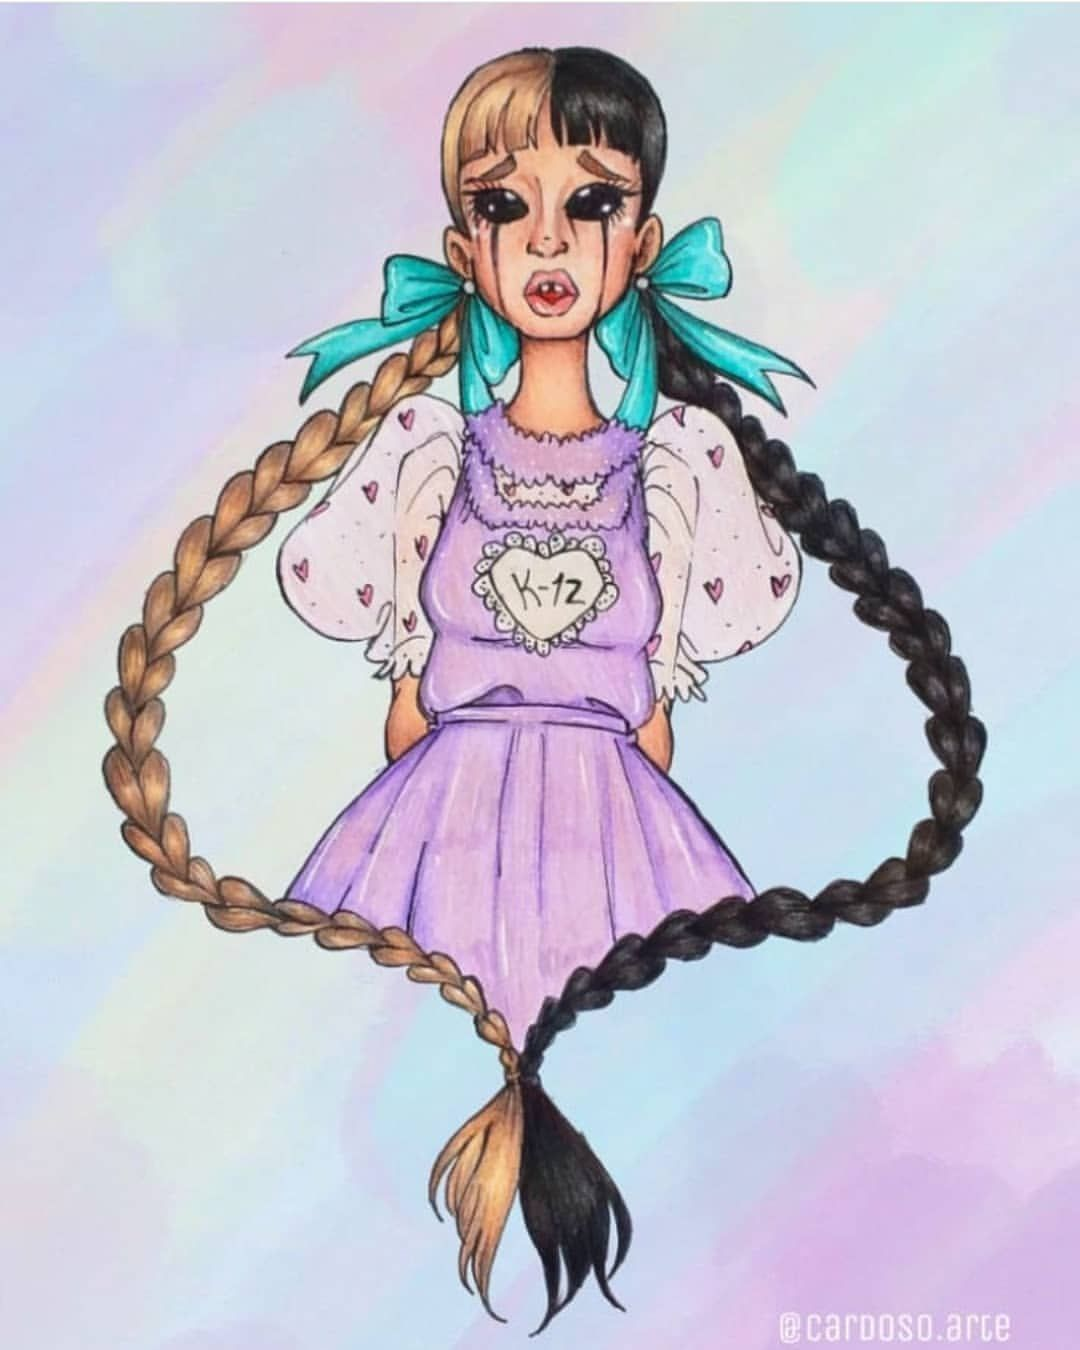 Pin By Ouddist On Melanie Martinez Melanie Martinez Anime Melanie Martinez Drawings Melanie Martinez